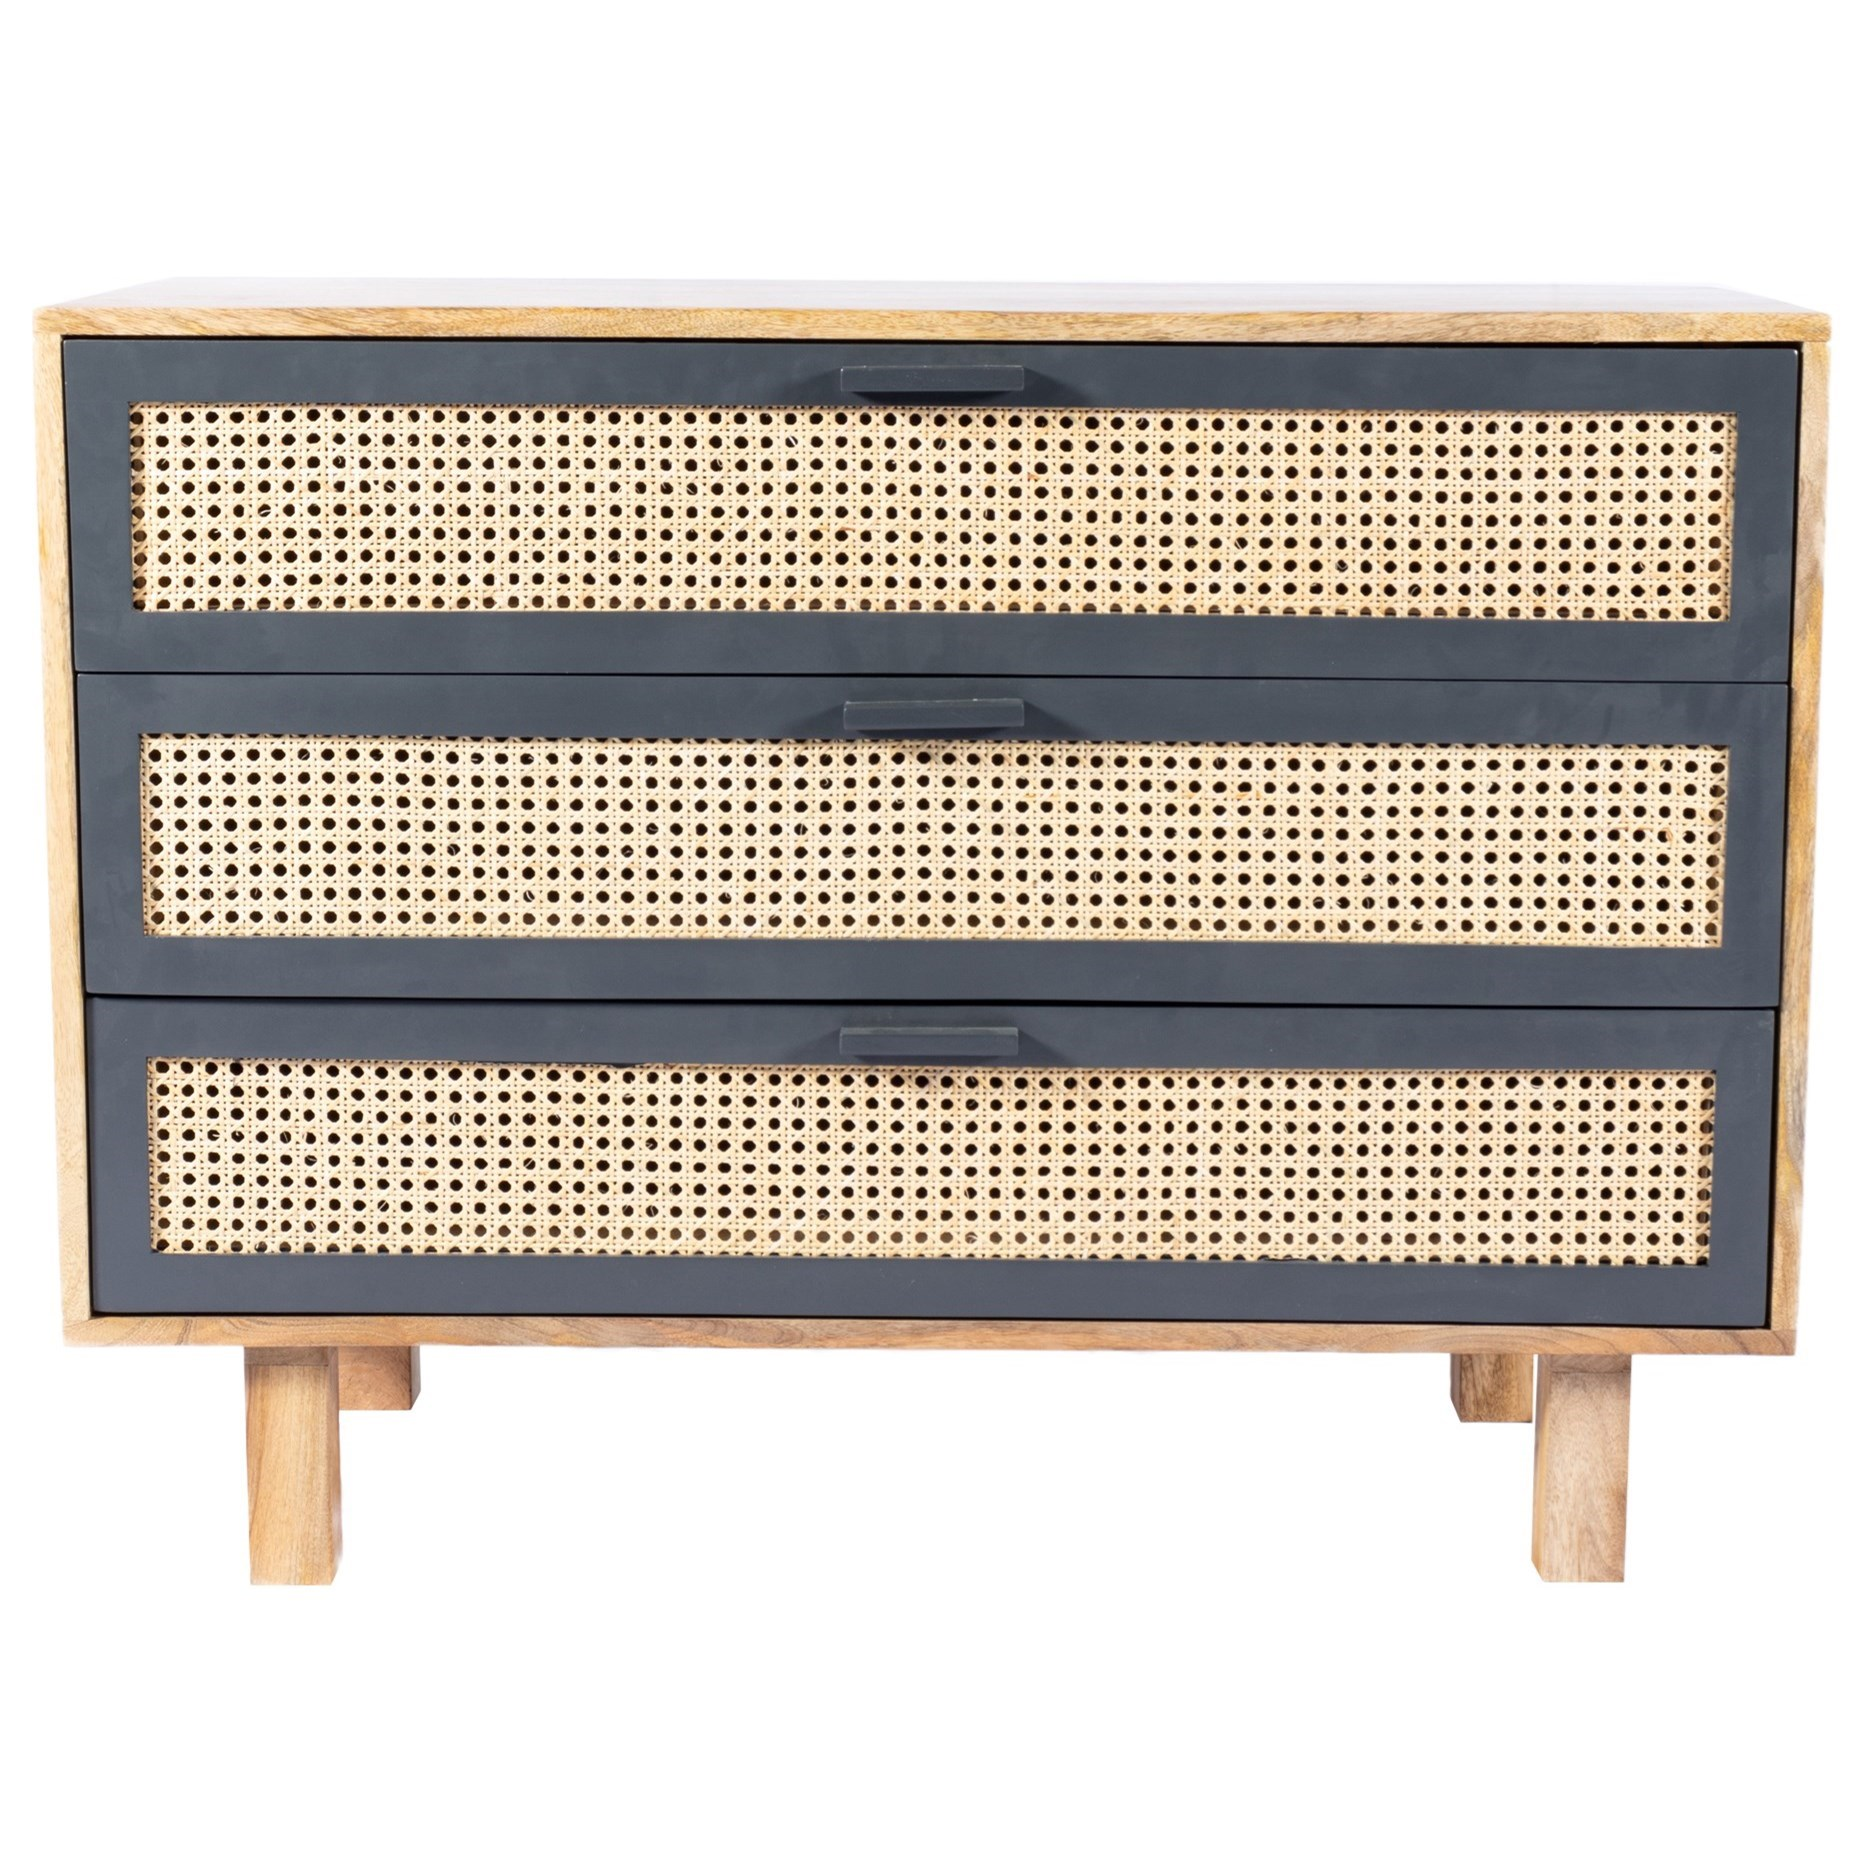 Ashton Woven Cane Accent Chest by Moe's Home Collection at Stoney Creek Furniture